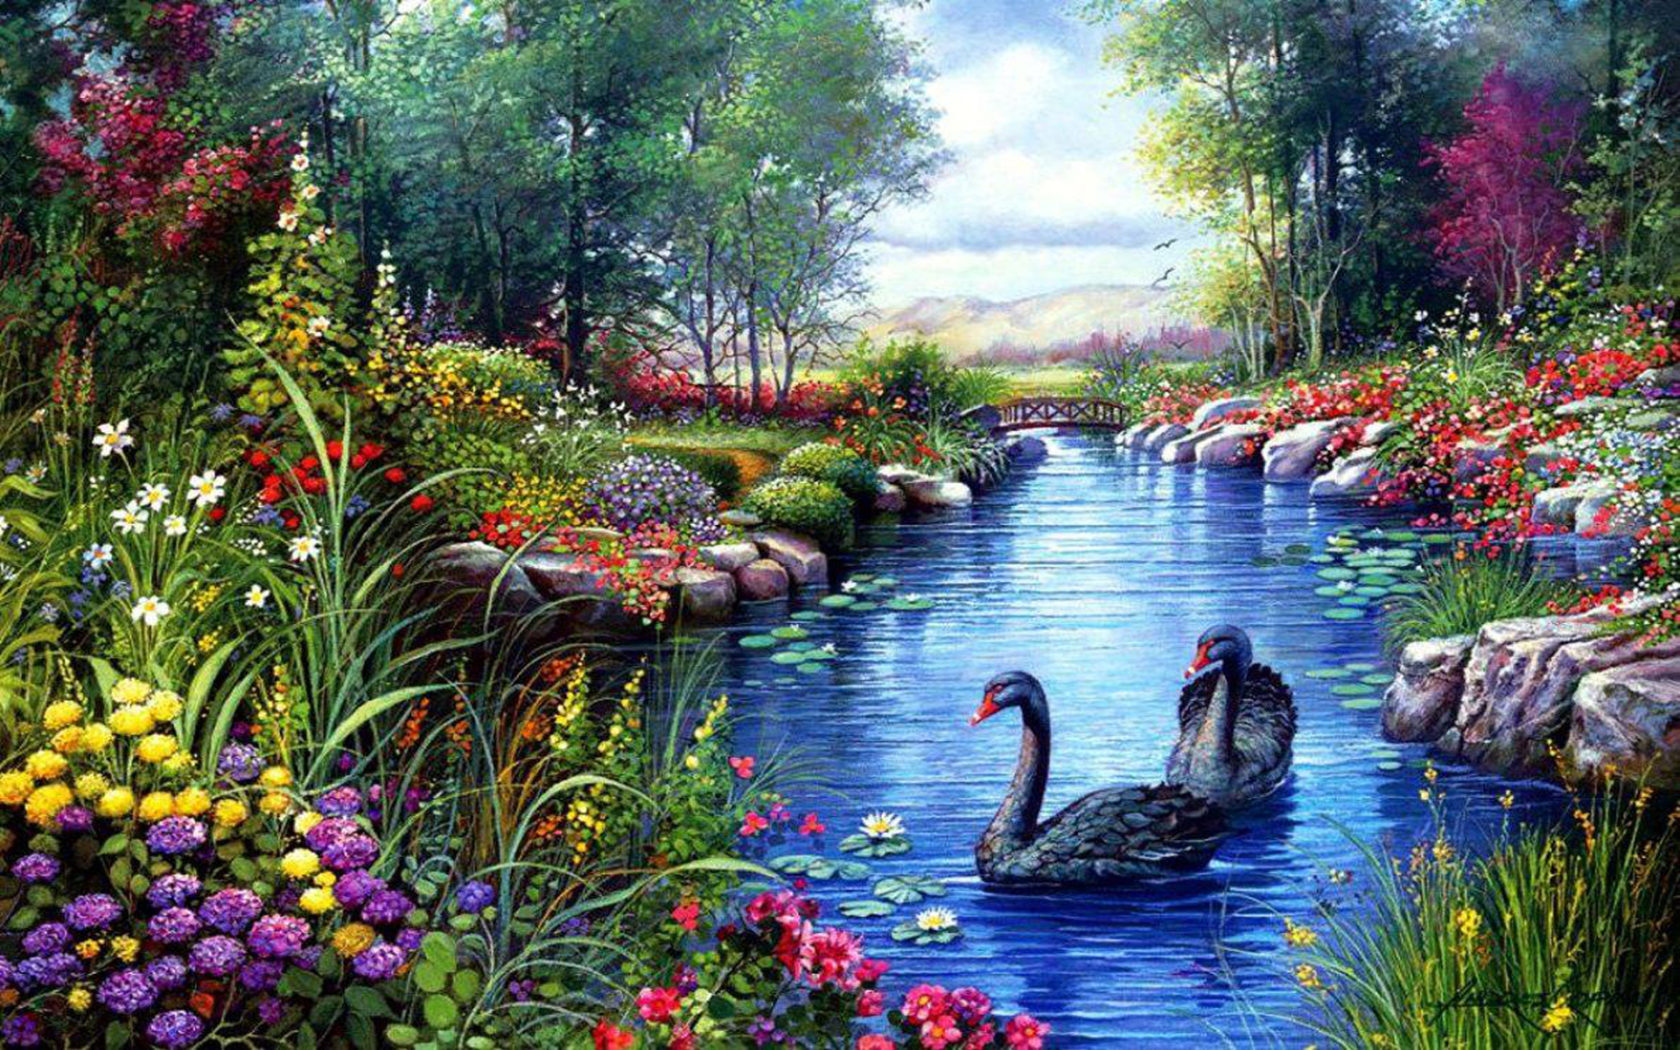 Beautiful Girl With Hat Wallpapers Black Swans Trees River Flowers Painting Hd Wallpaper